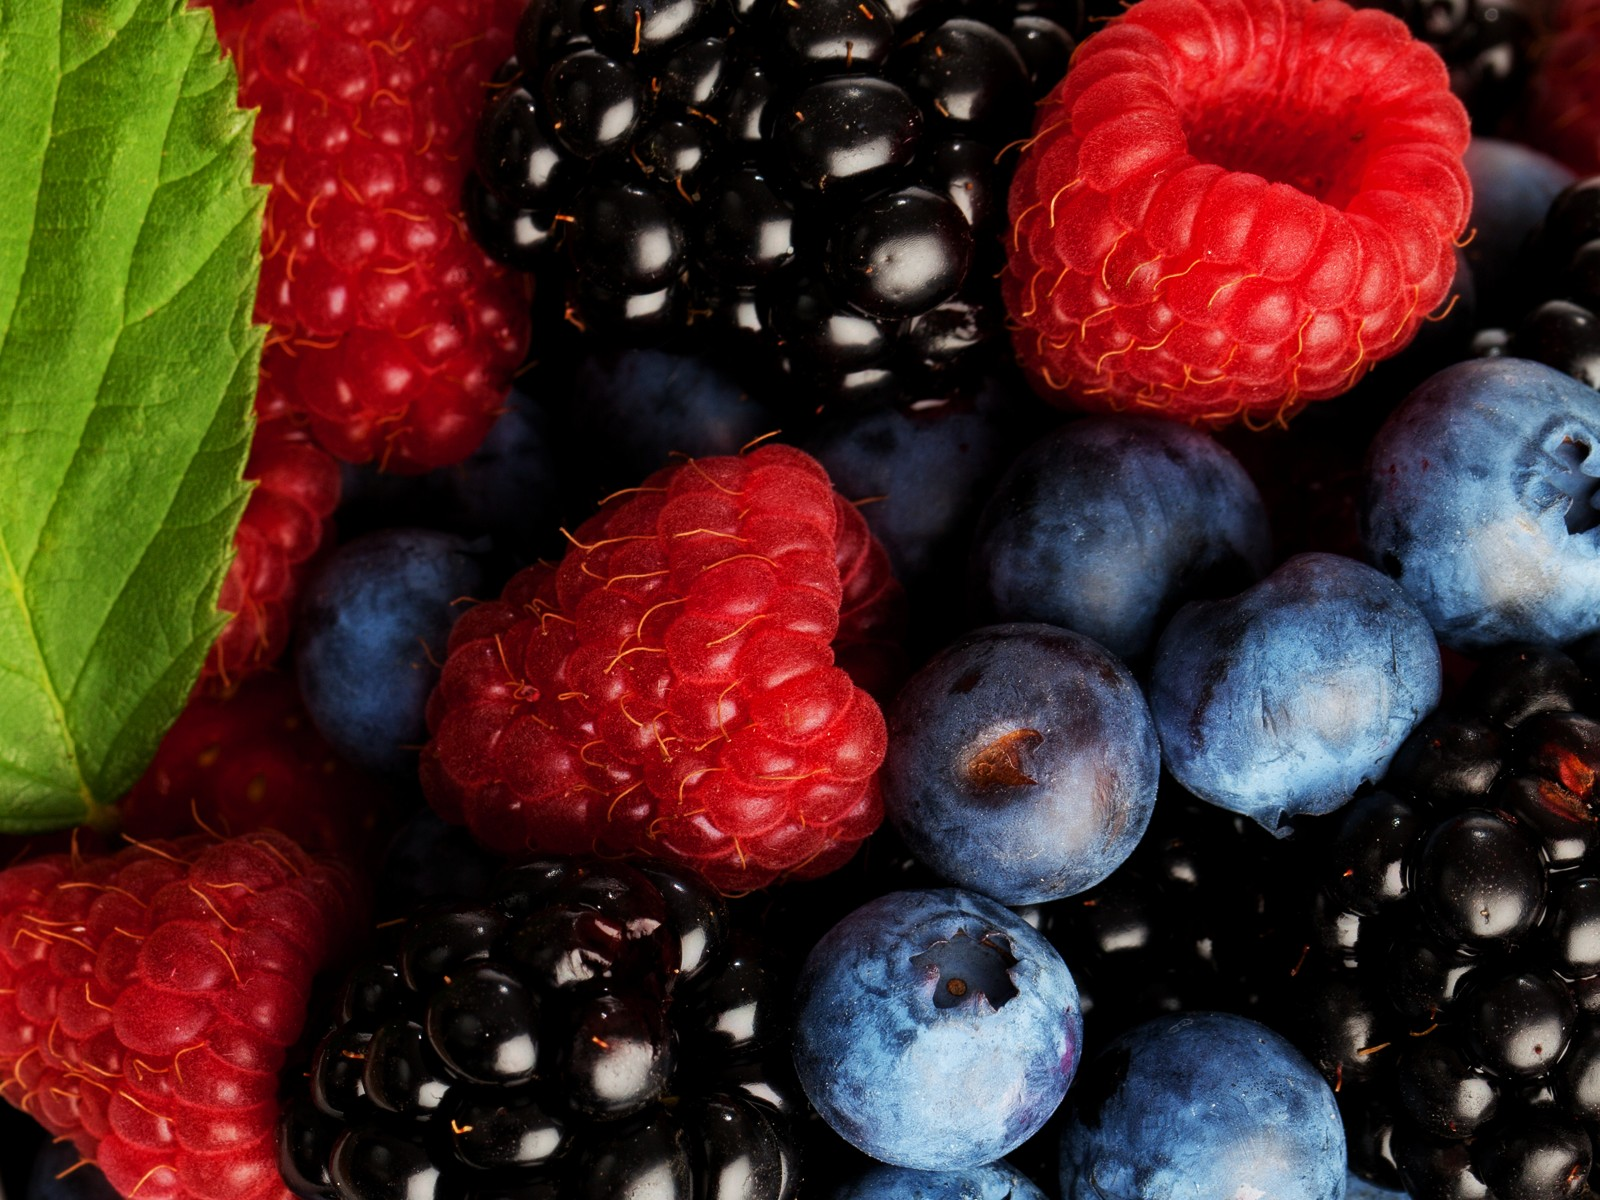 38905254, Wonderful Berries Backgrounds, Sade Newhall